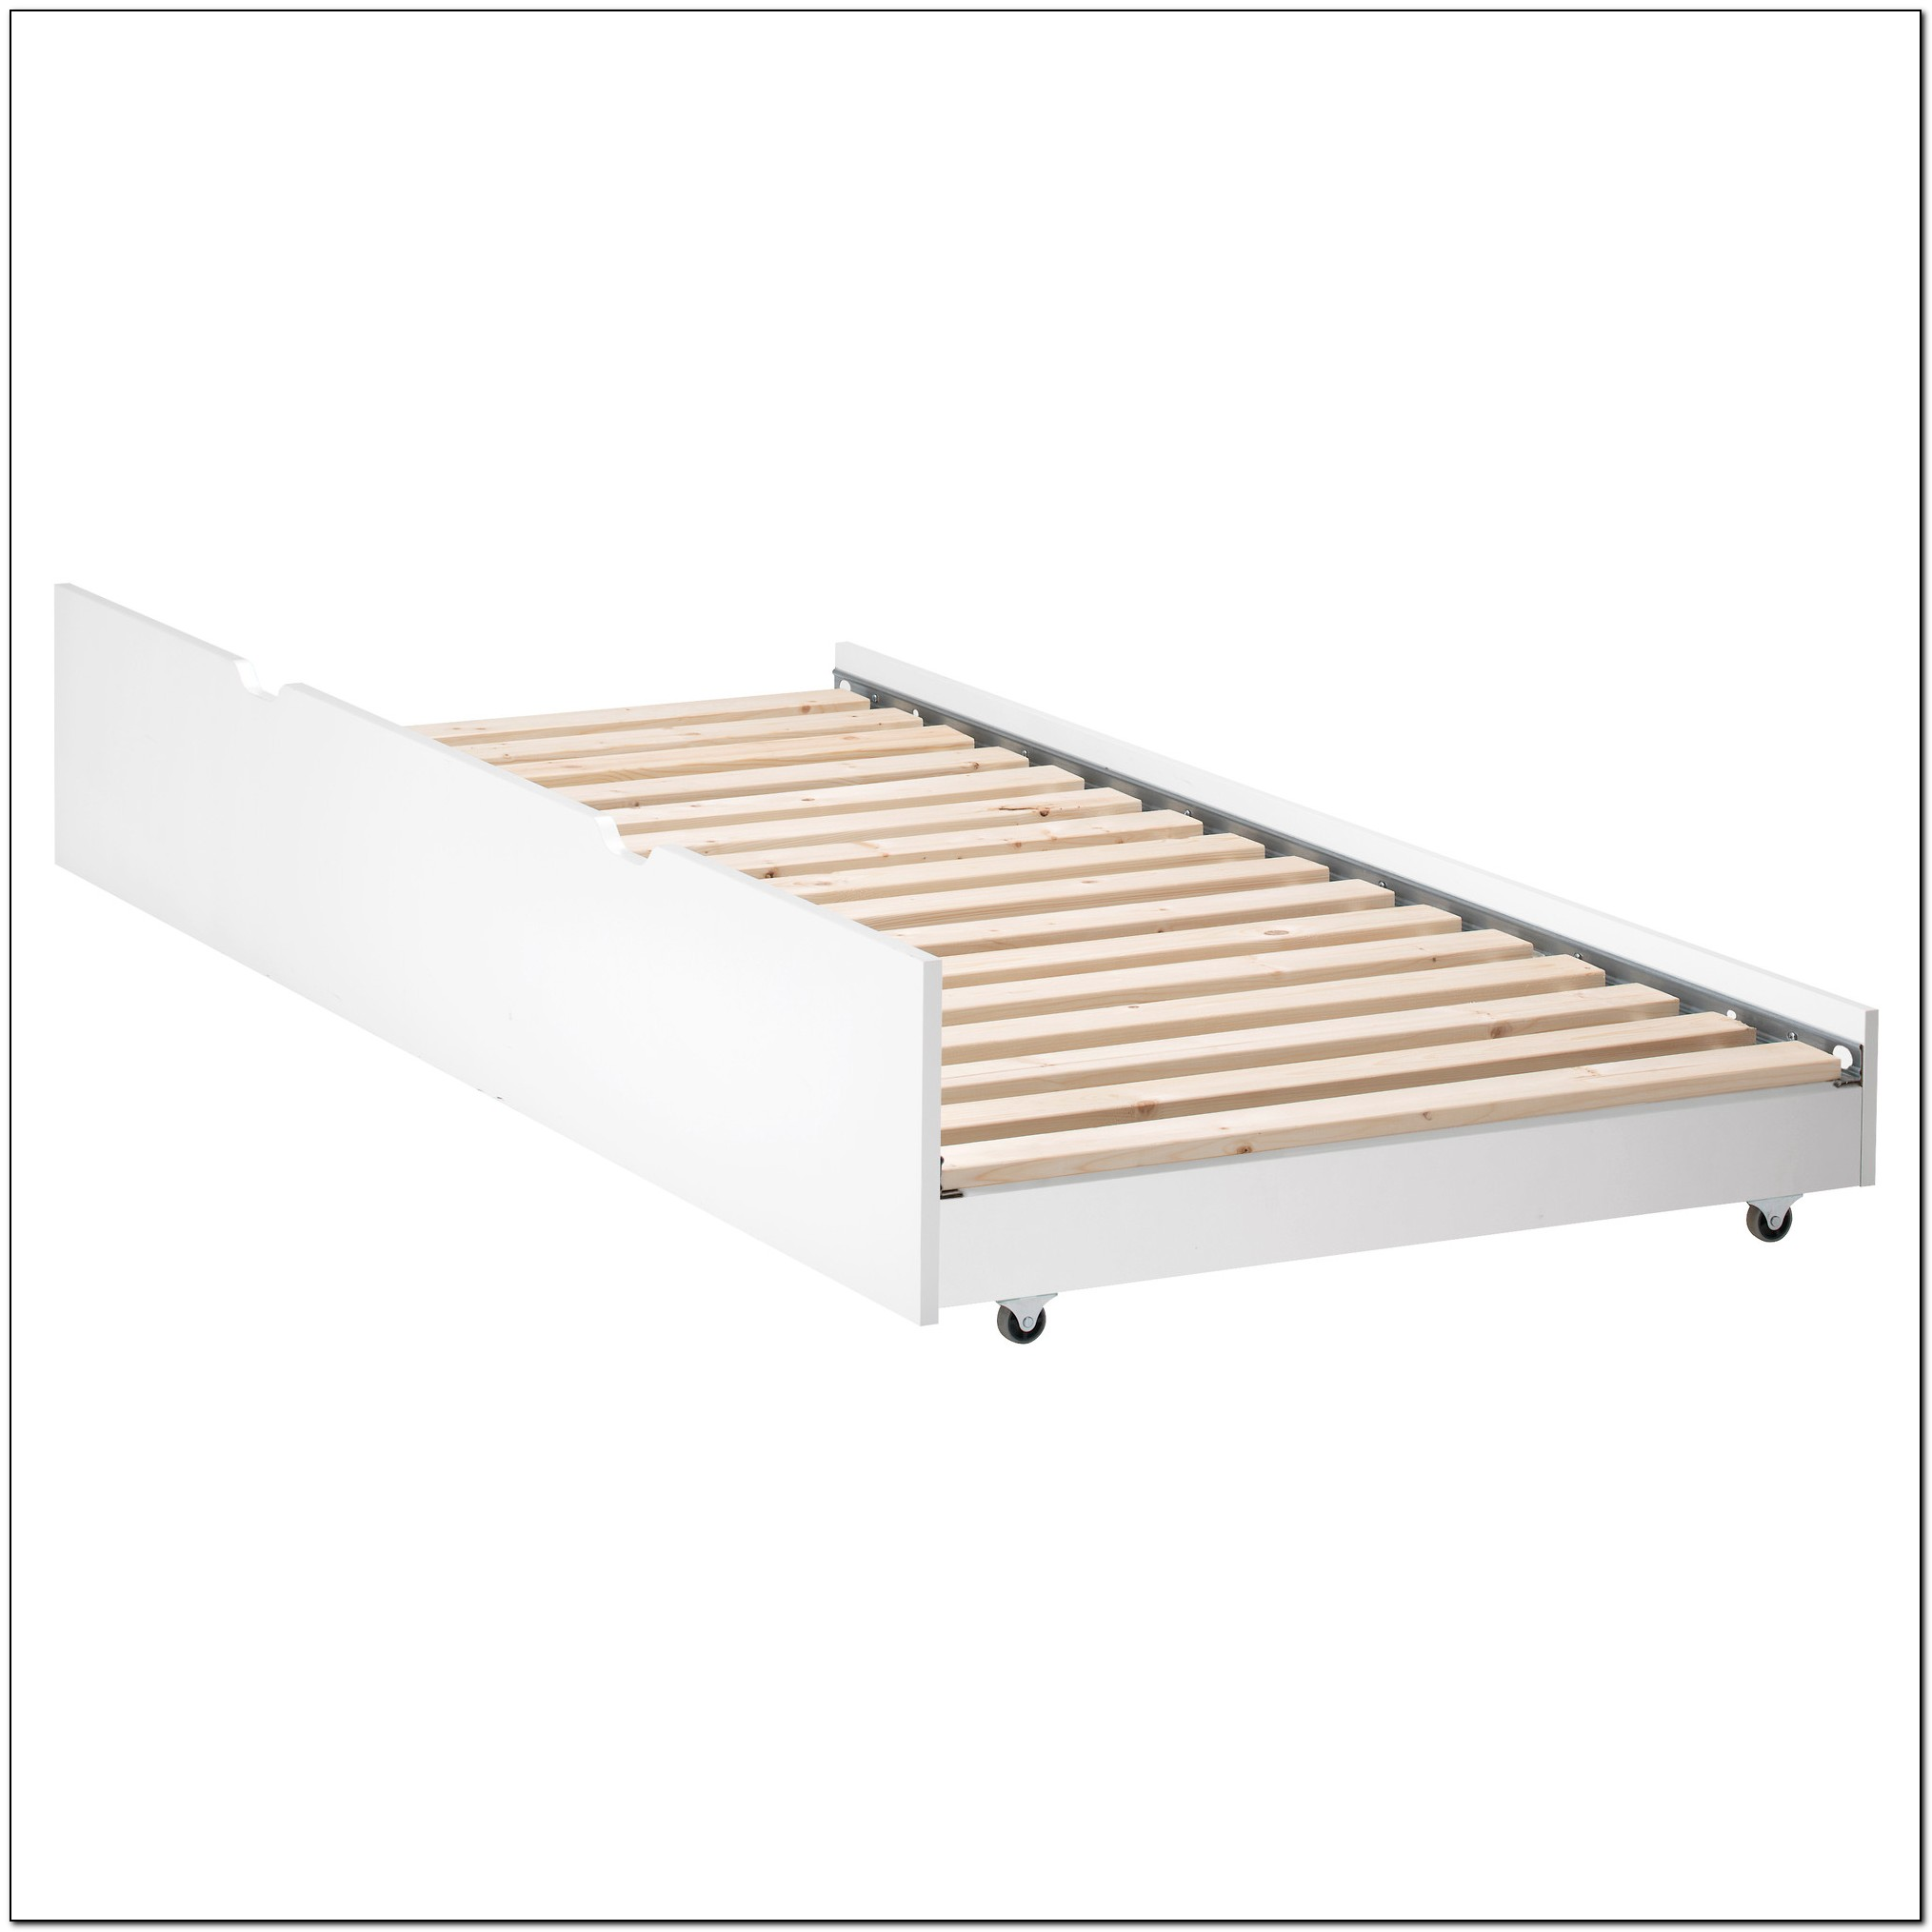 Ikea bed frame twin download page home design ideas for Ikea mattress frame